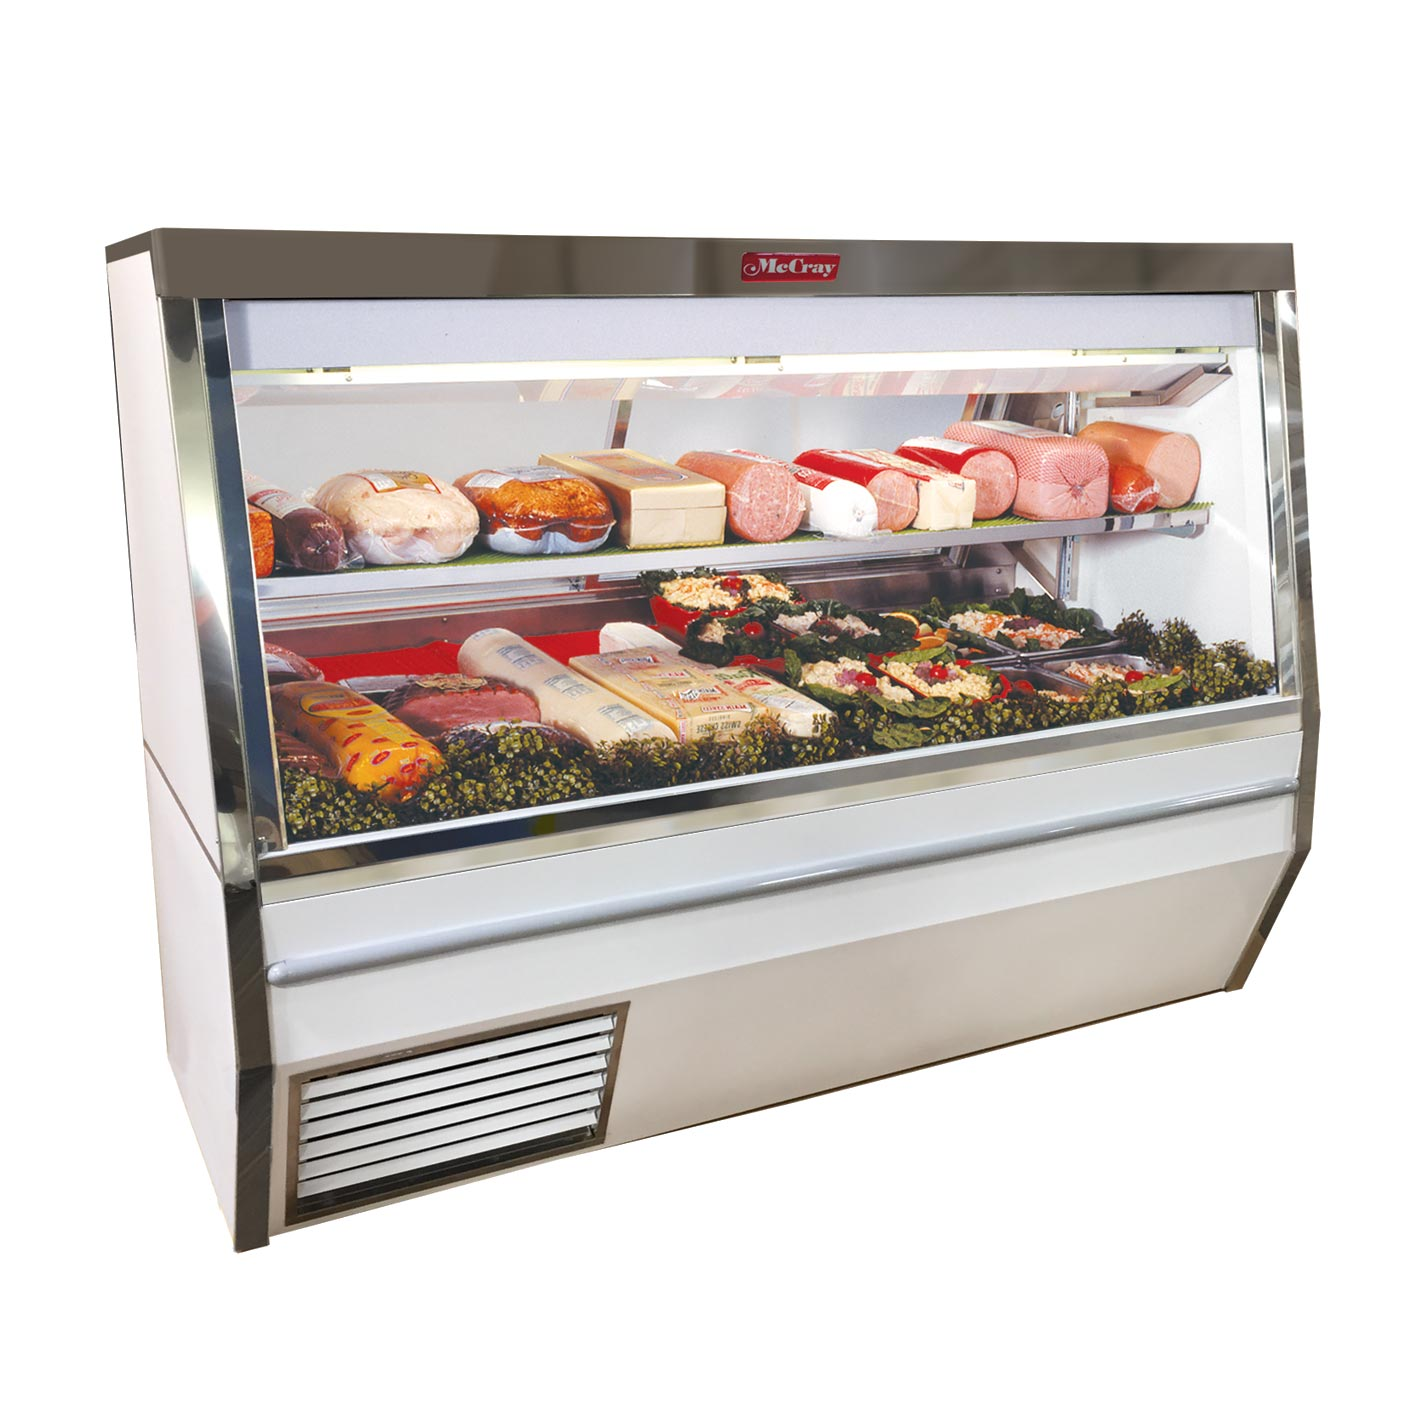 Howard-McCray R-CDS34N-8-LS-LED display case, refrigerated deli